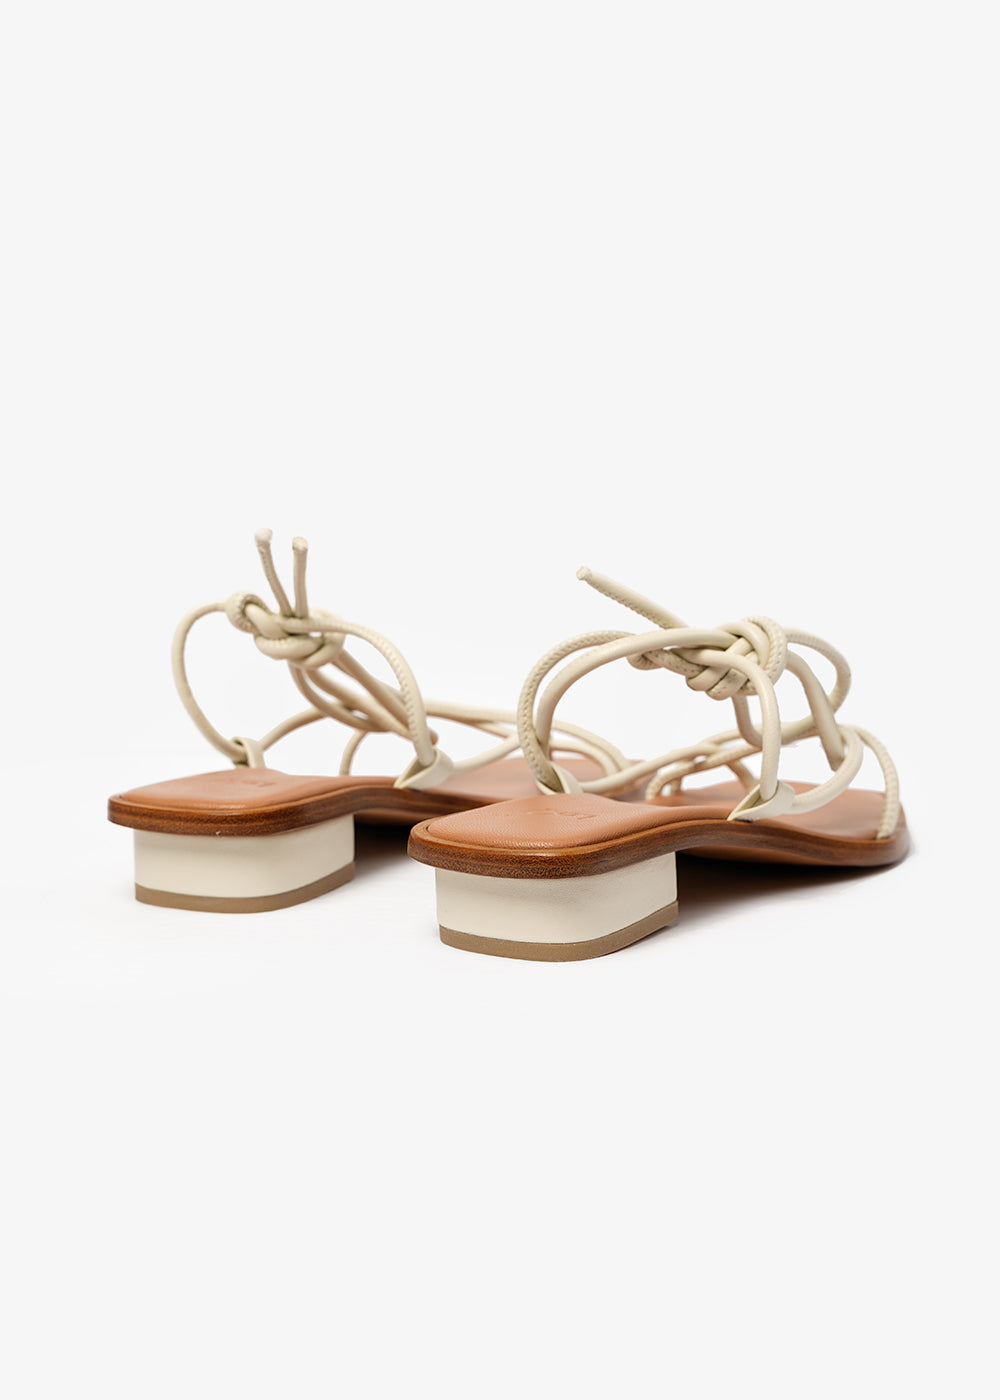 LoQ Sal Ara Sandals — Shop sustainable fashion and slow fashion at New Classics Studios